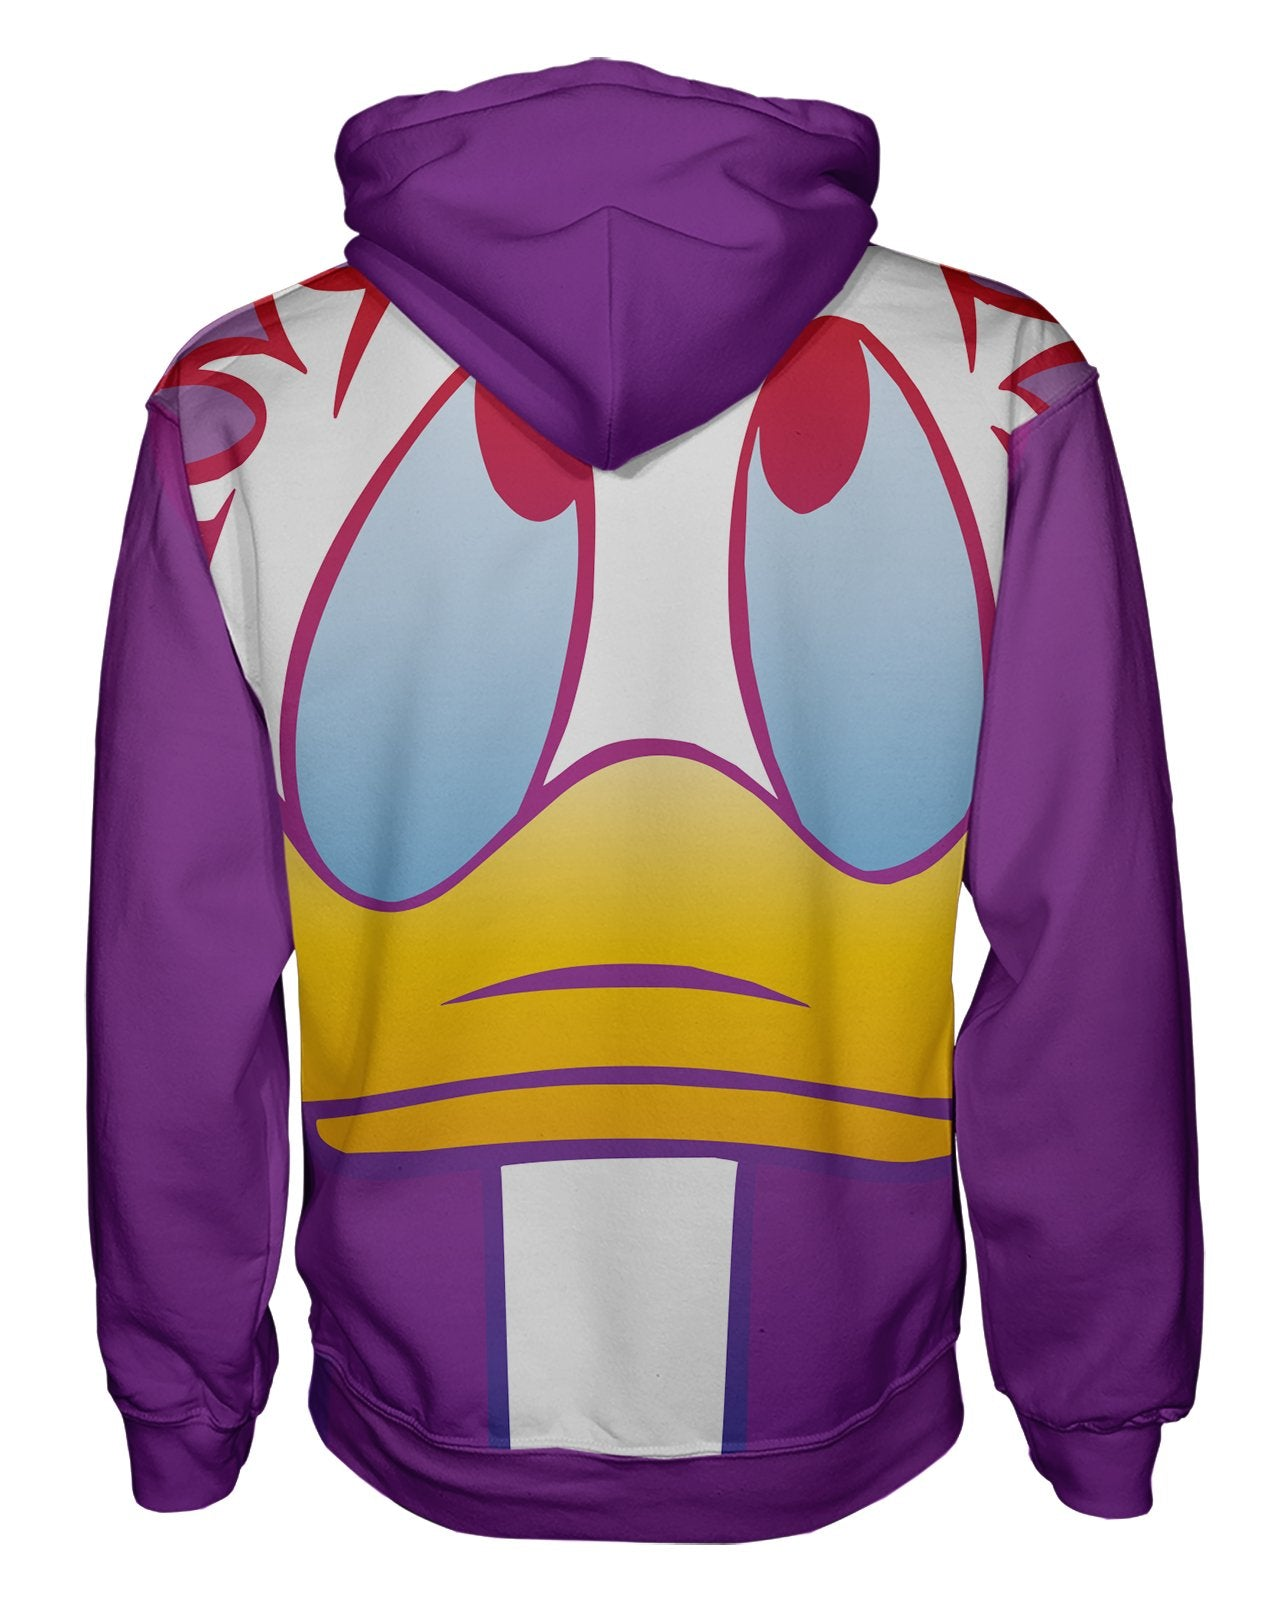 Looking Donald Pullover Hoodie